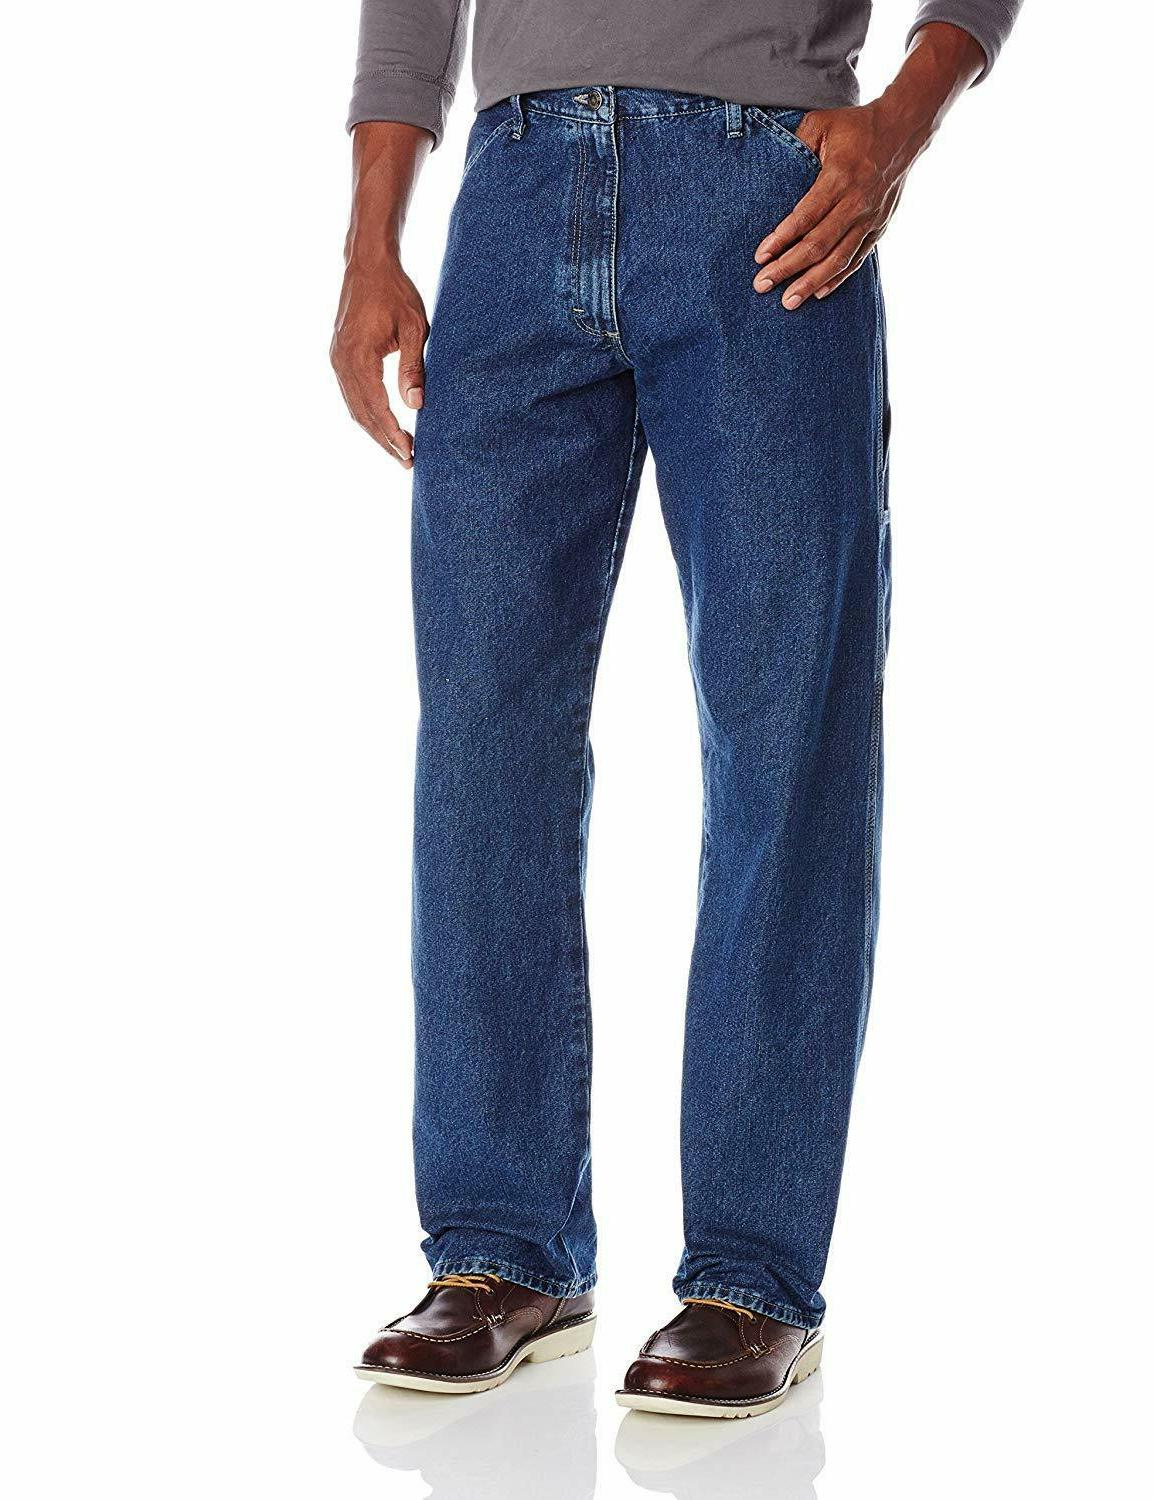 Wrangler Authentics Classic Carpenter